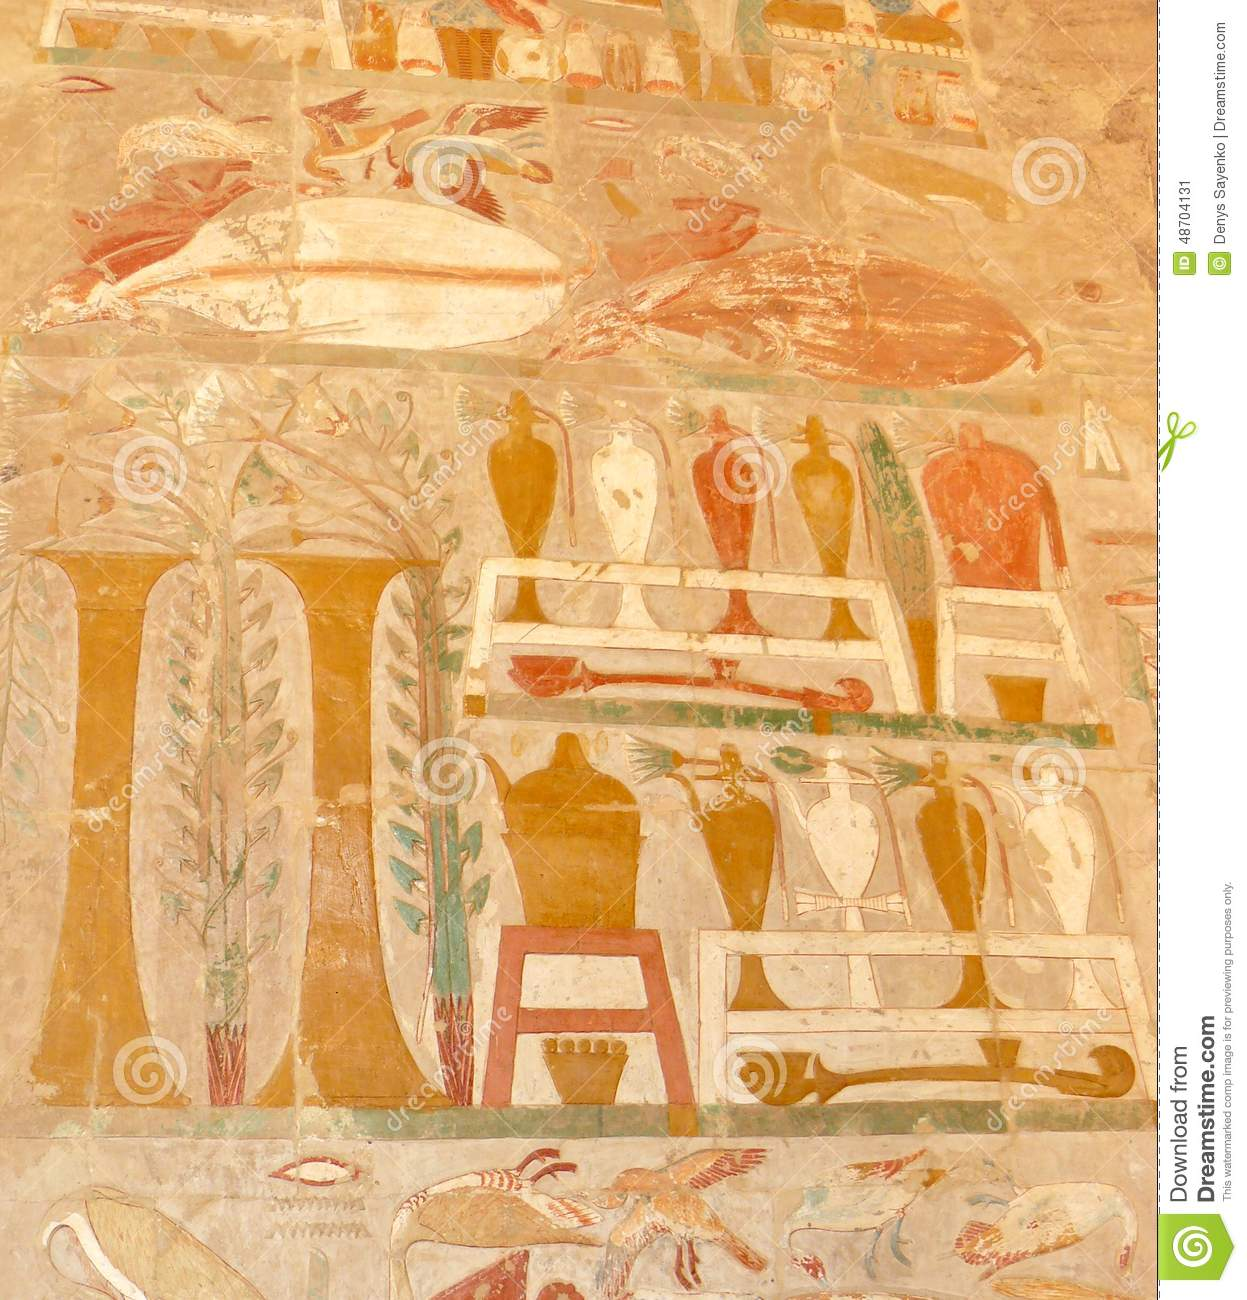 Egyptian painting stock image image of antique temple for Ancient egyptian mural paintings